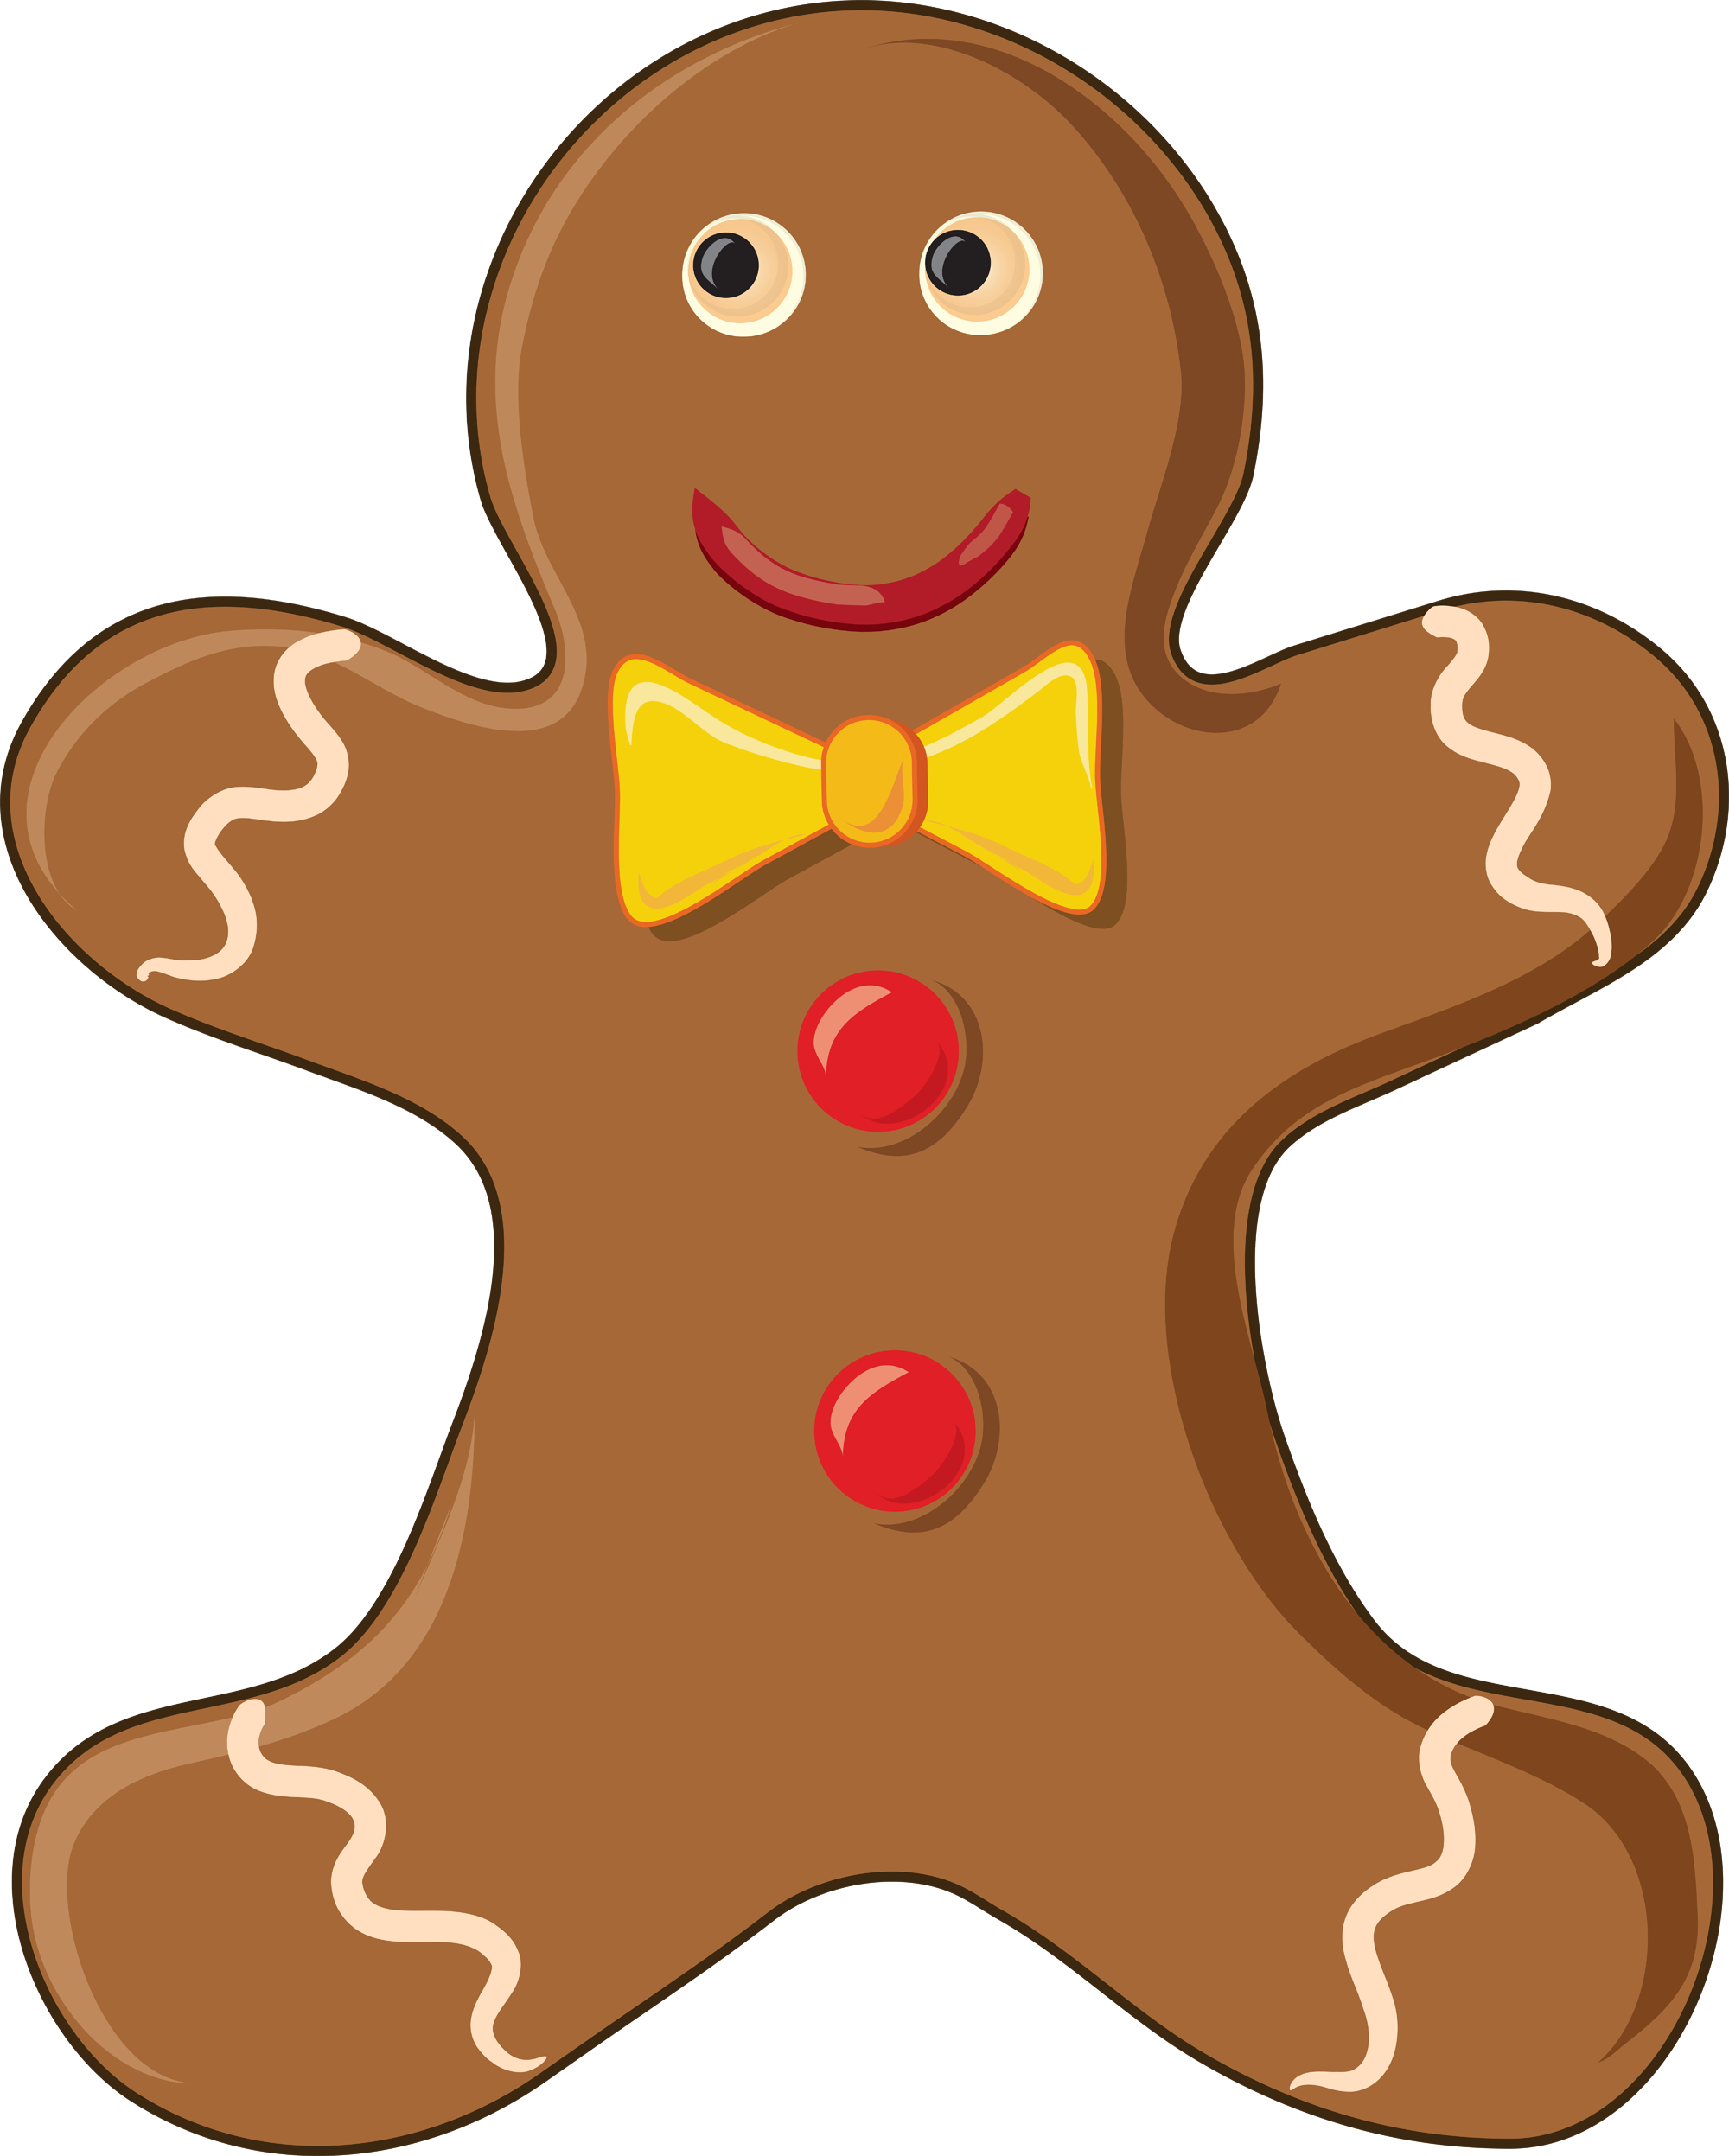 Free Gingerbread Man, Download Free Clip Art, Free Clip Art on.